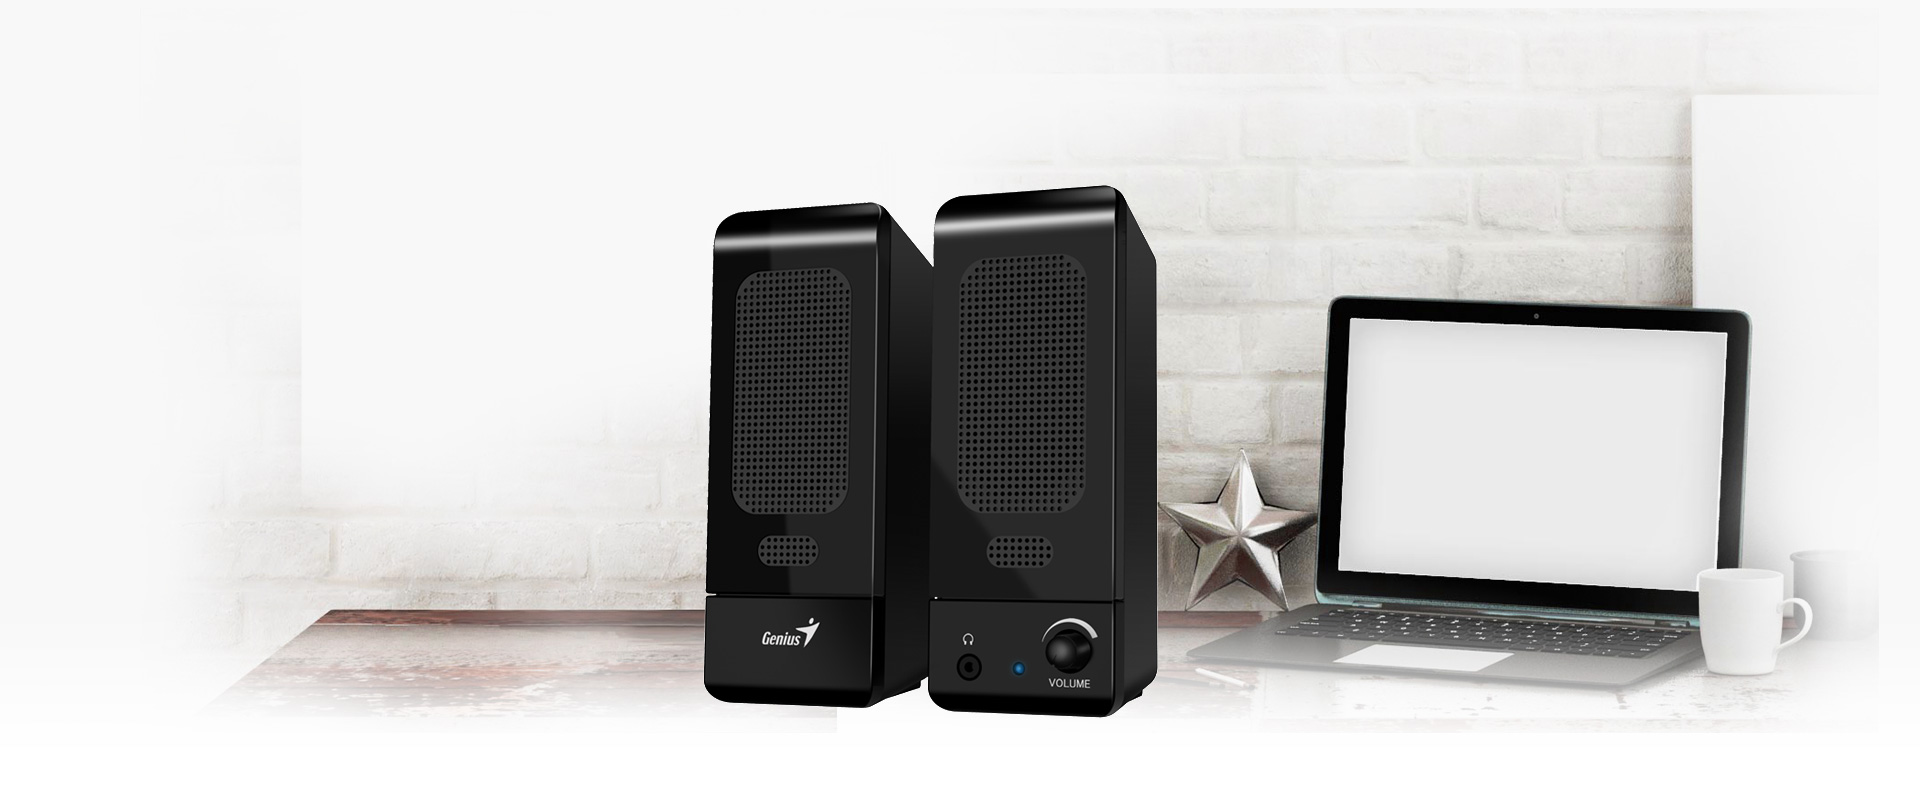 Genius 20 Computer Speaker With Clear And Rich Sound Spu120 Usb Powered Stereo Schematic Design Best Music Partner